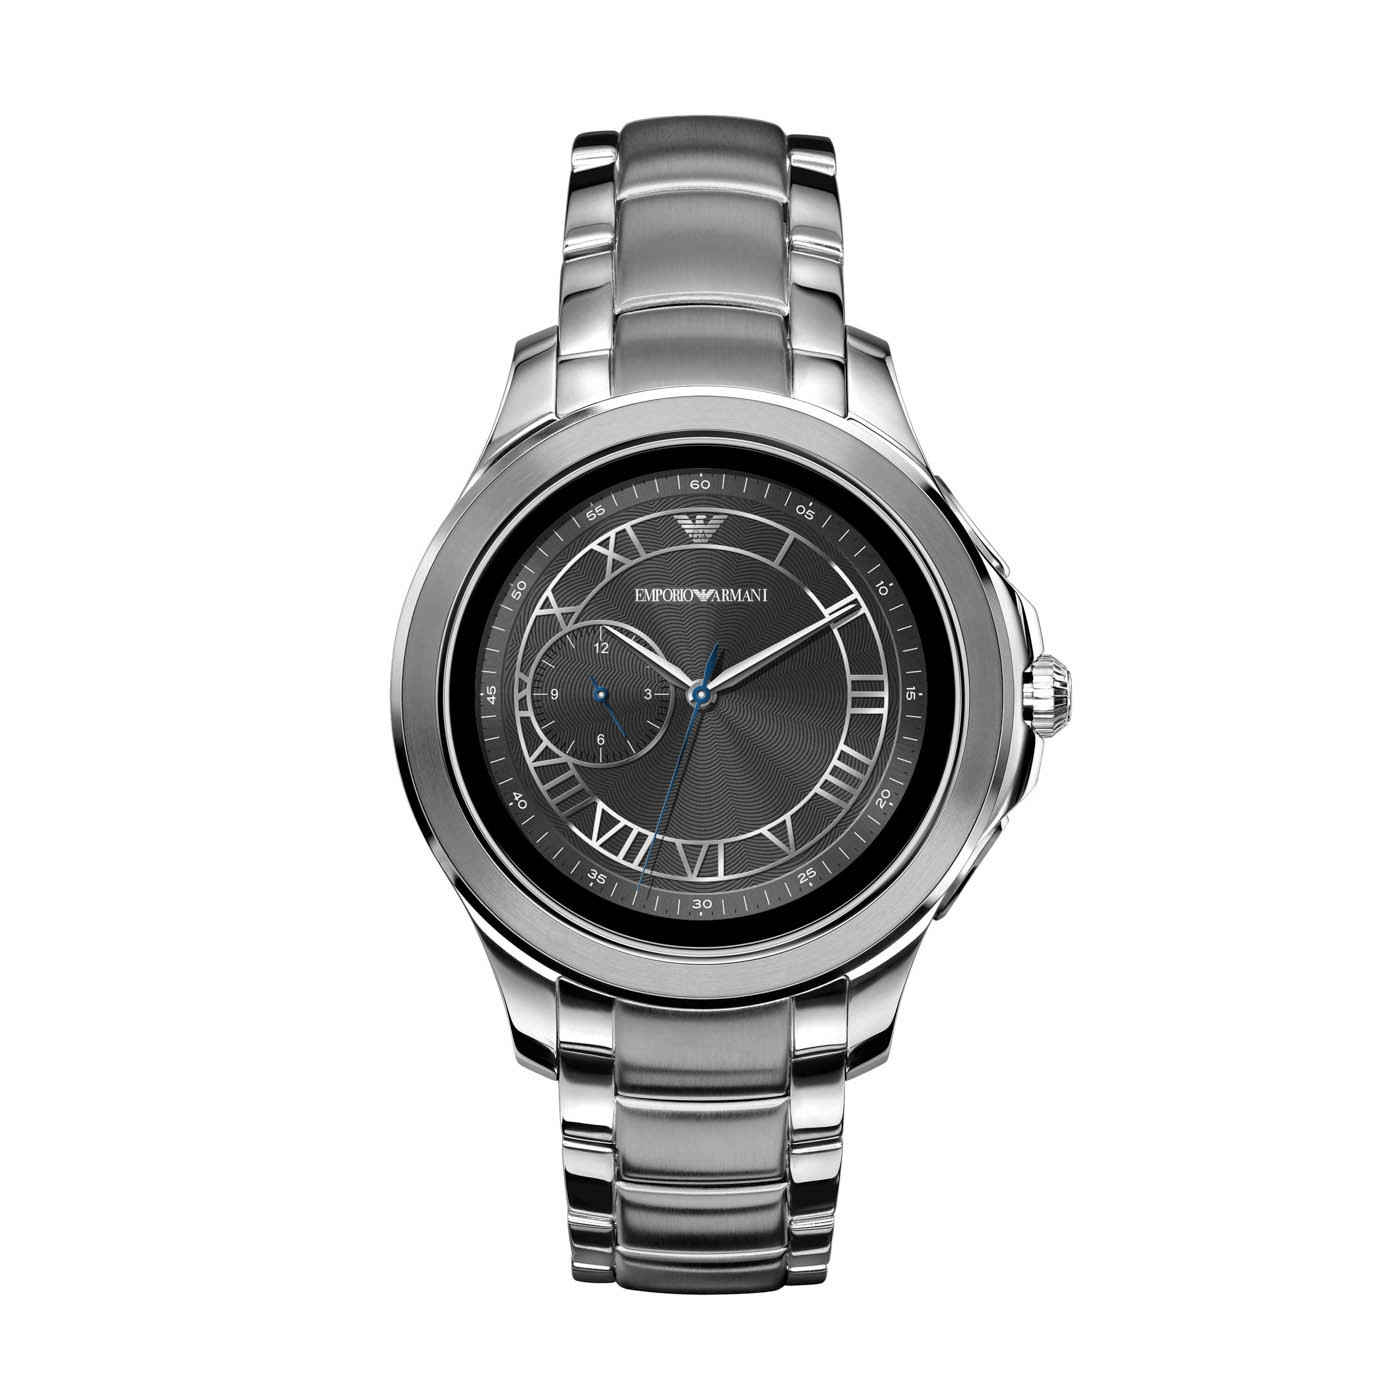 Emporio Armani Connected Alberto Gen 4 Display Smartwatch ART5010